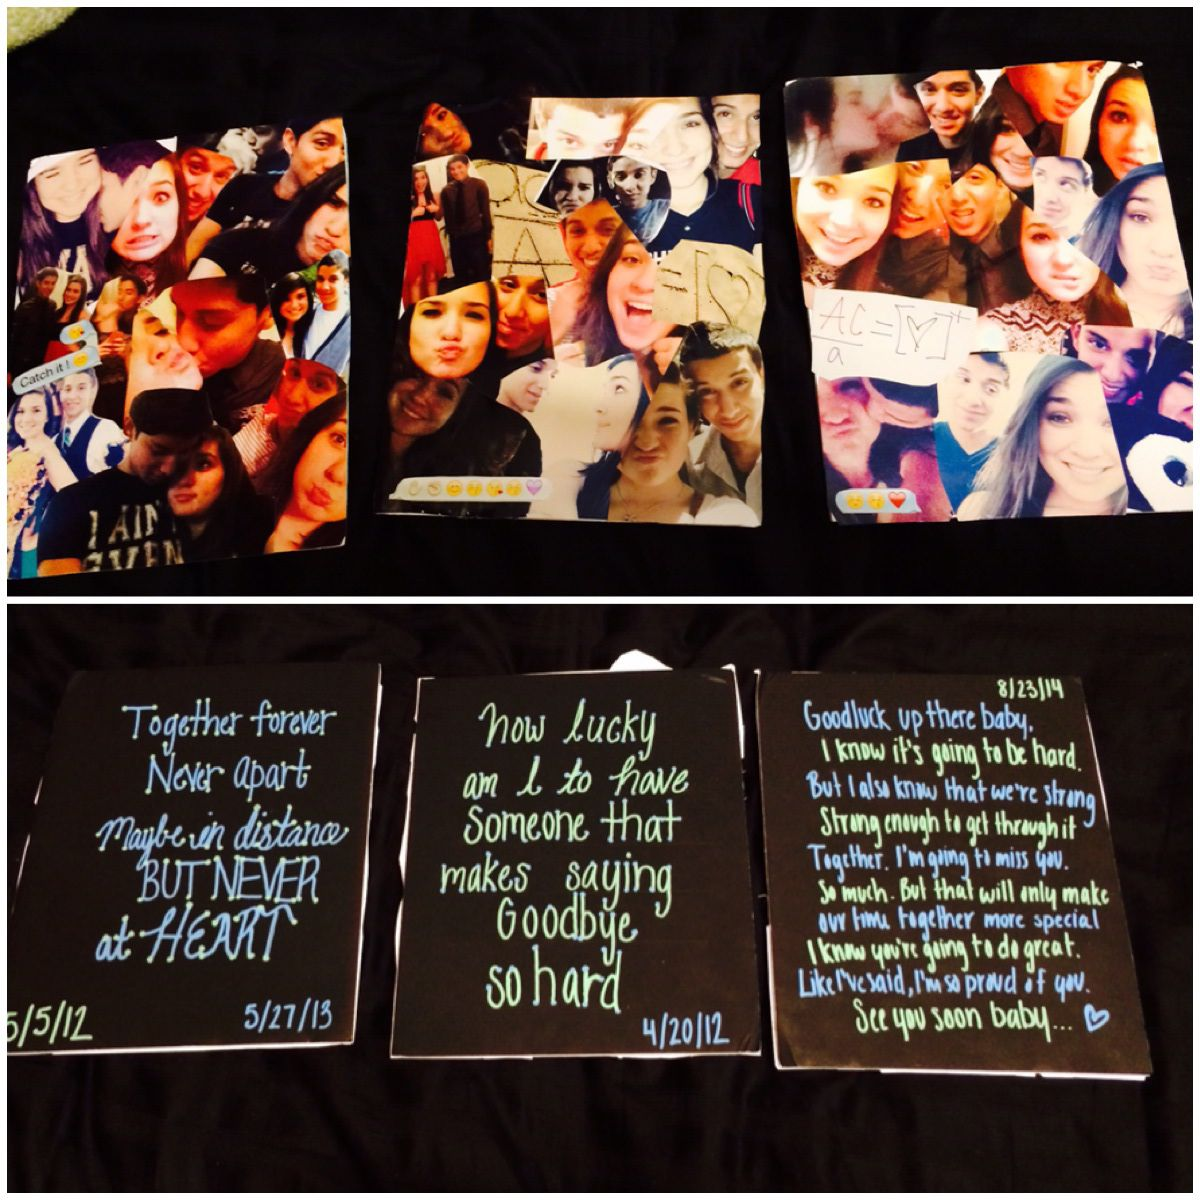 College Going Away Gift For The Boyfriend Collage Of Pictures Taken Over The Years Followed By Some Quotes A Heartf Going Away Gifts Best Friend Gifts Gifts